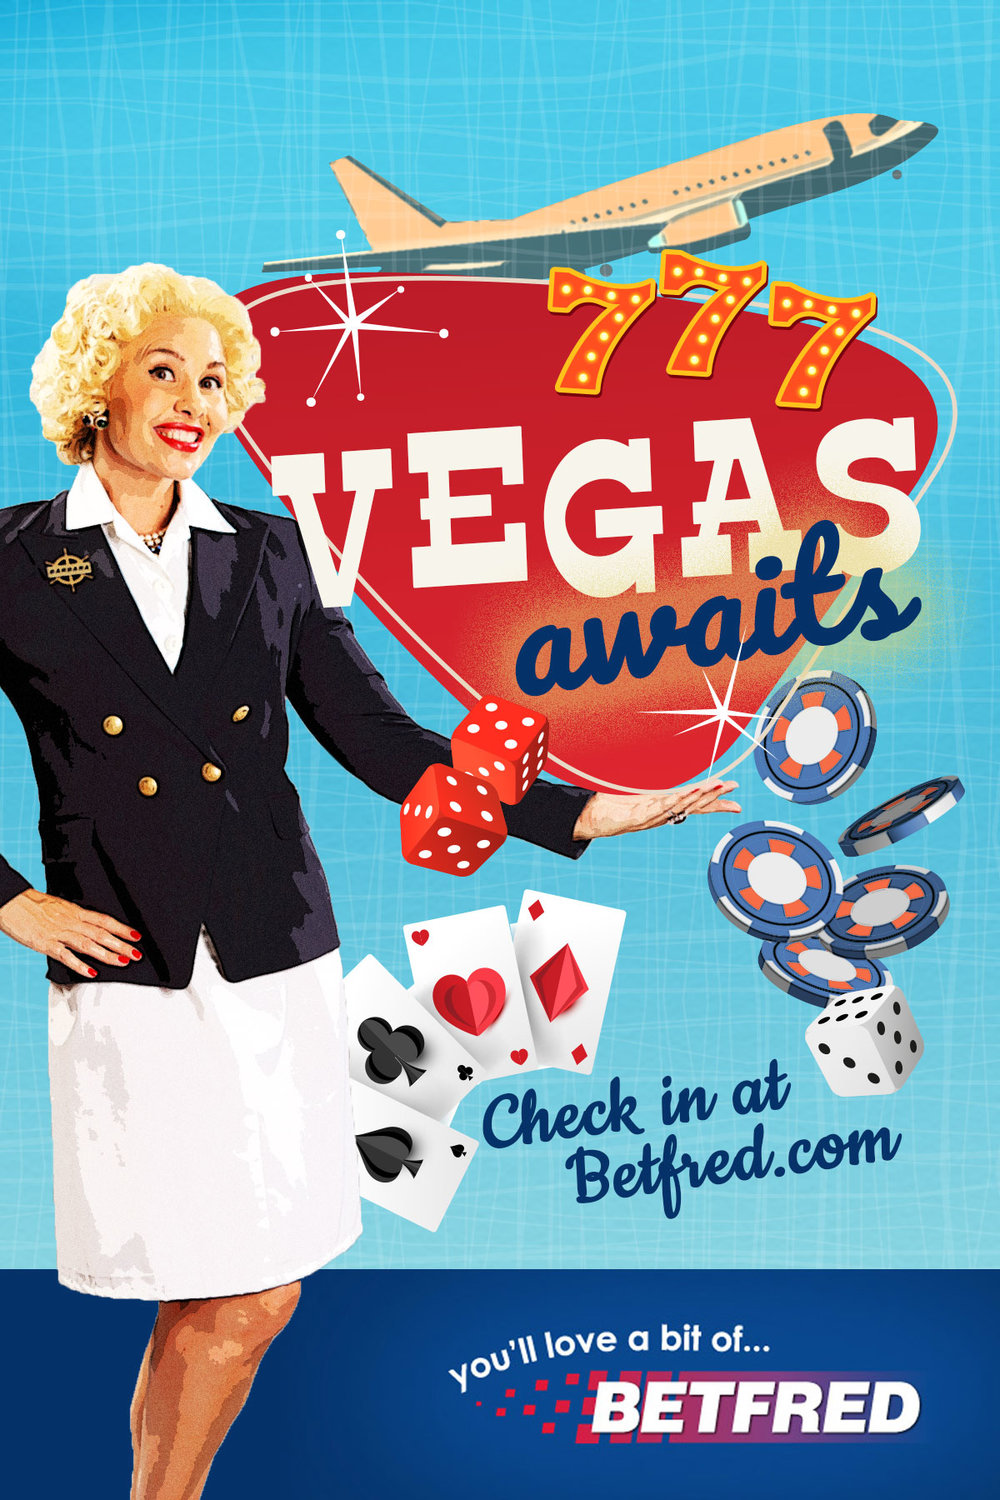 BETFRED_VEGAS_6SHEET.jpg